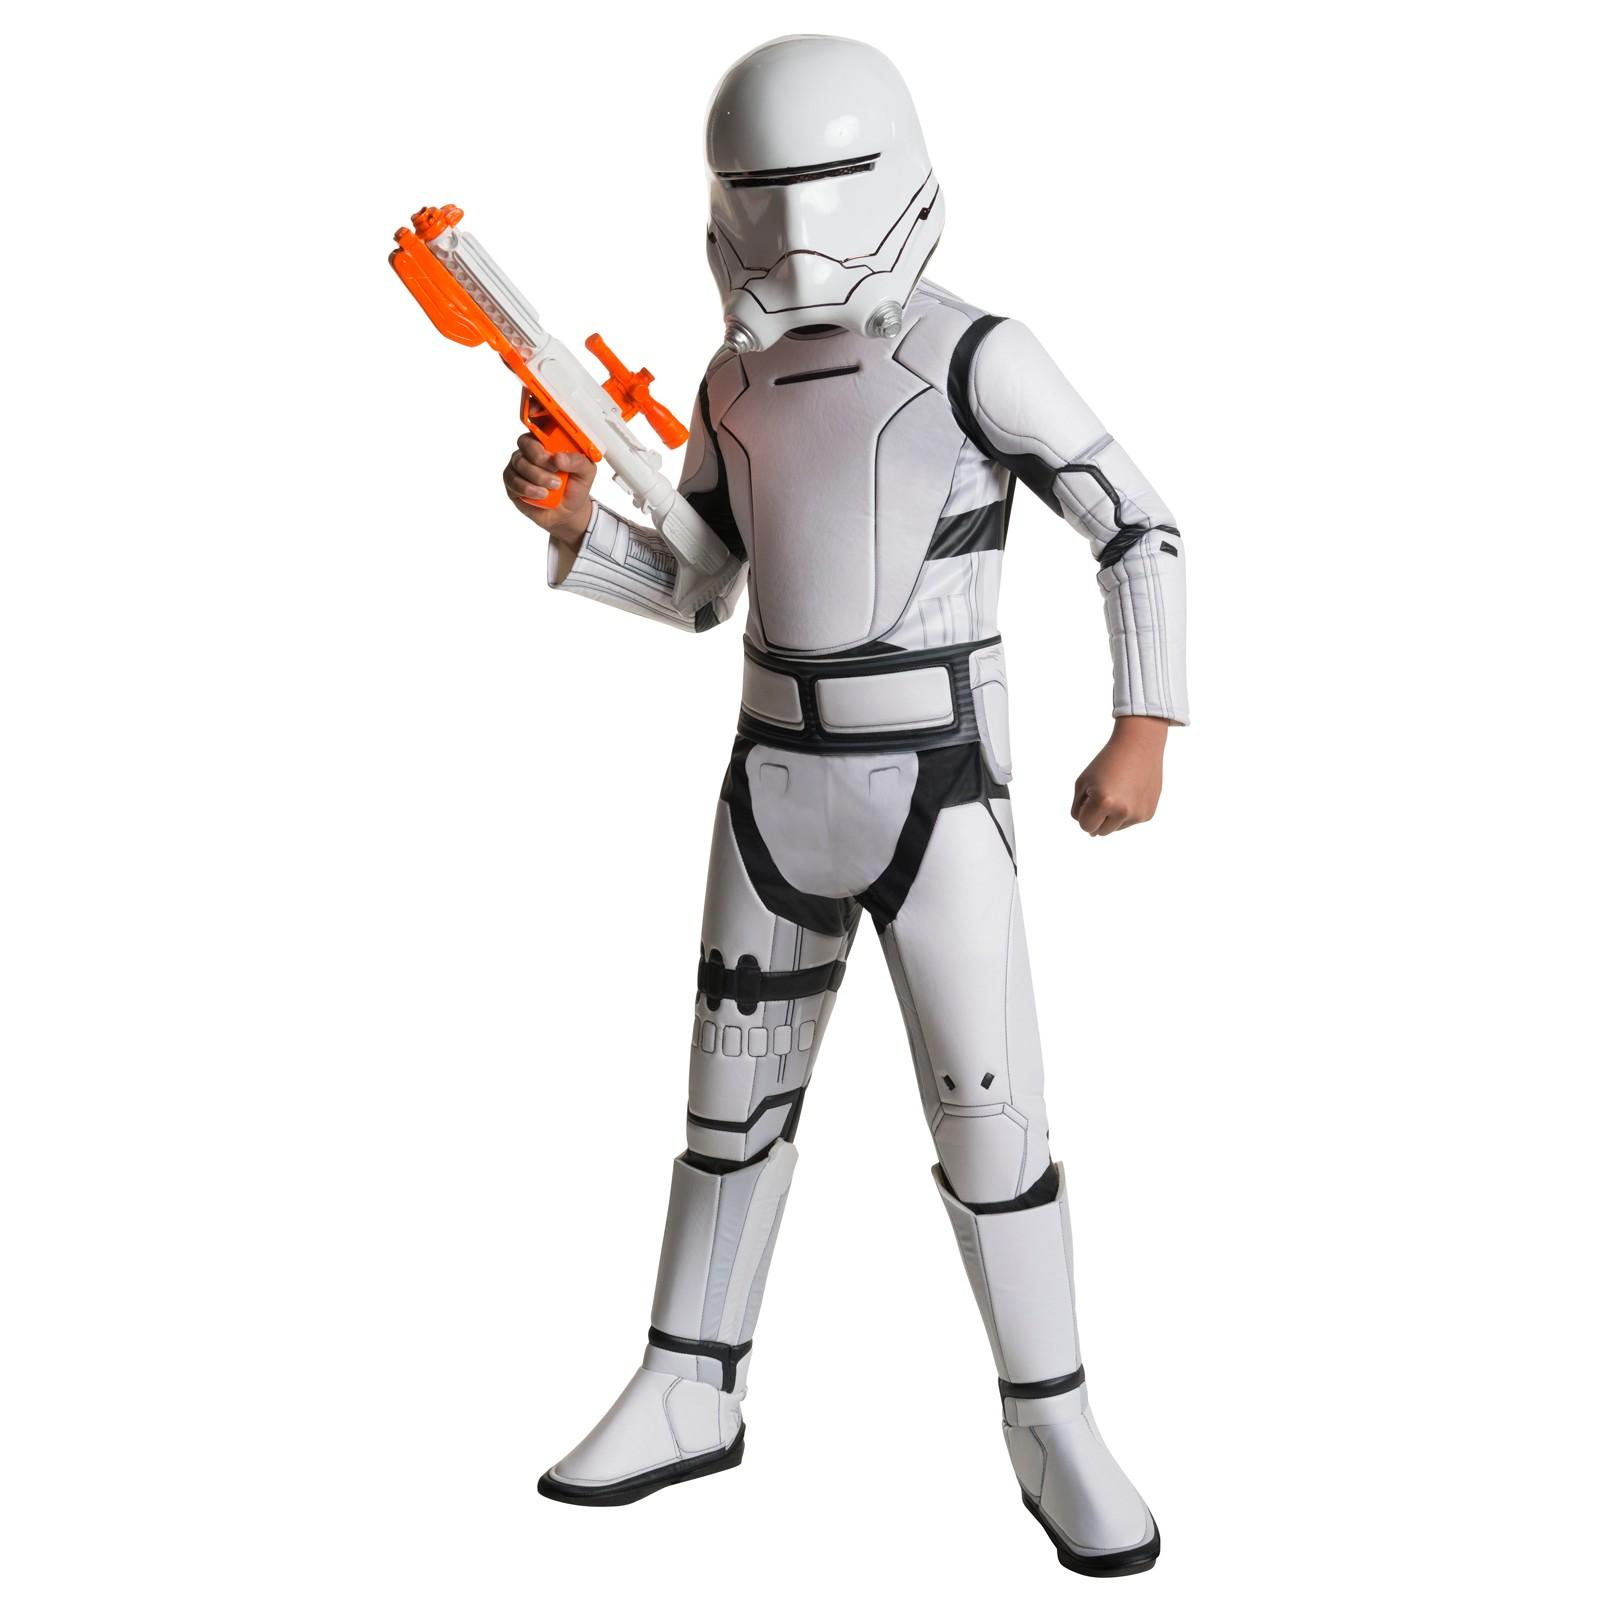 Star Wars Episode VII Boysu0027 Flame Trooper Super Deluxe Child Halloween Costume - Walmart.com  sc 1 st  Walmart & Star Wars Episode VII Boysu0027 Flame Trooper Super Deluxe Child ...